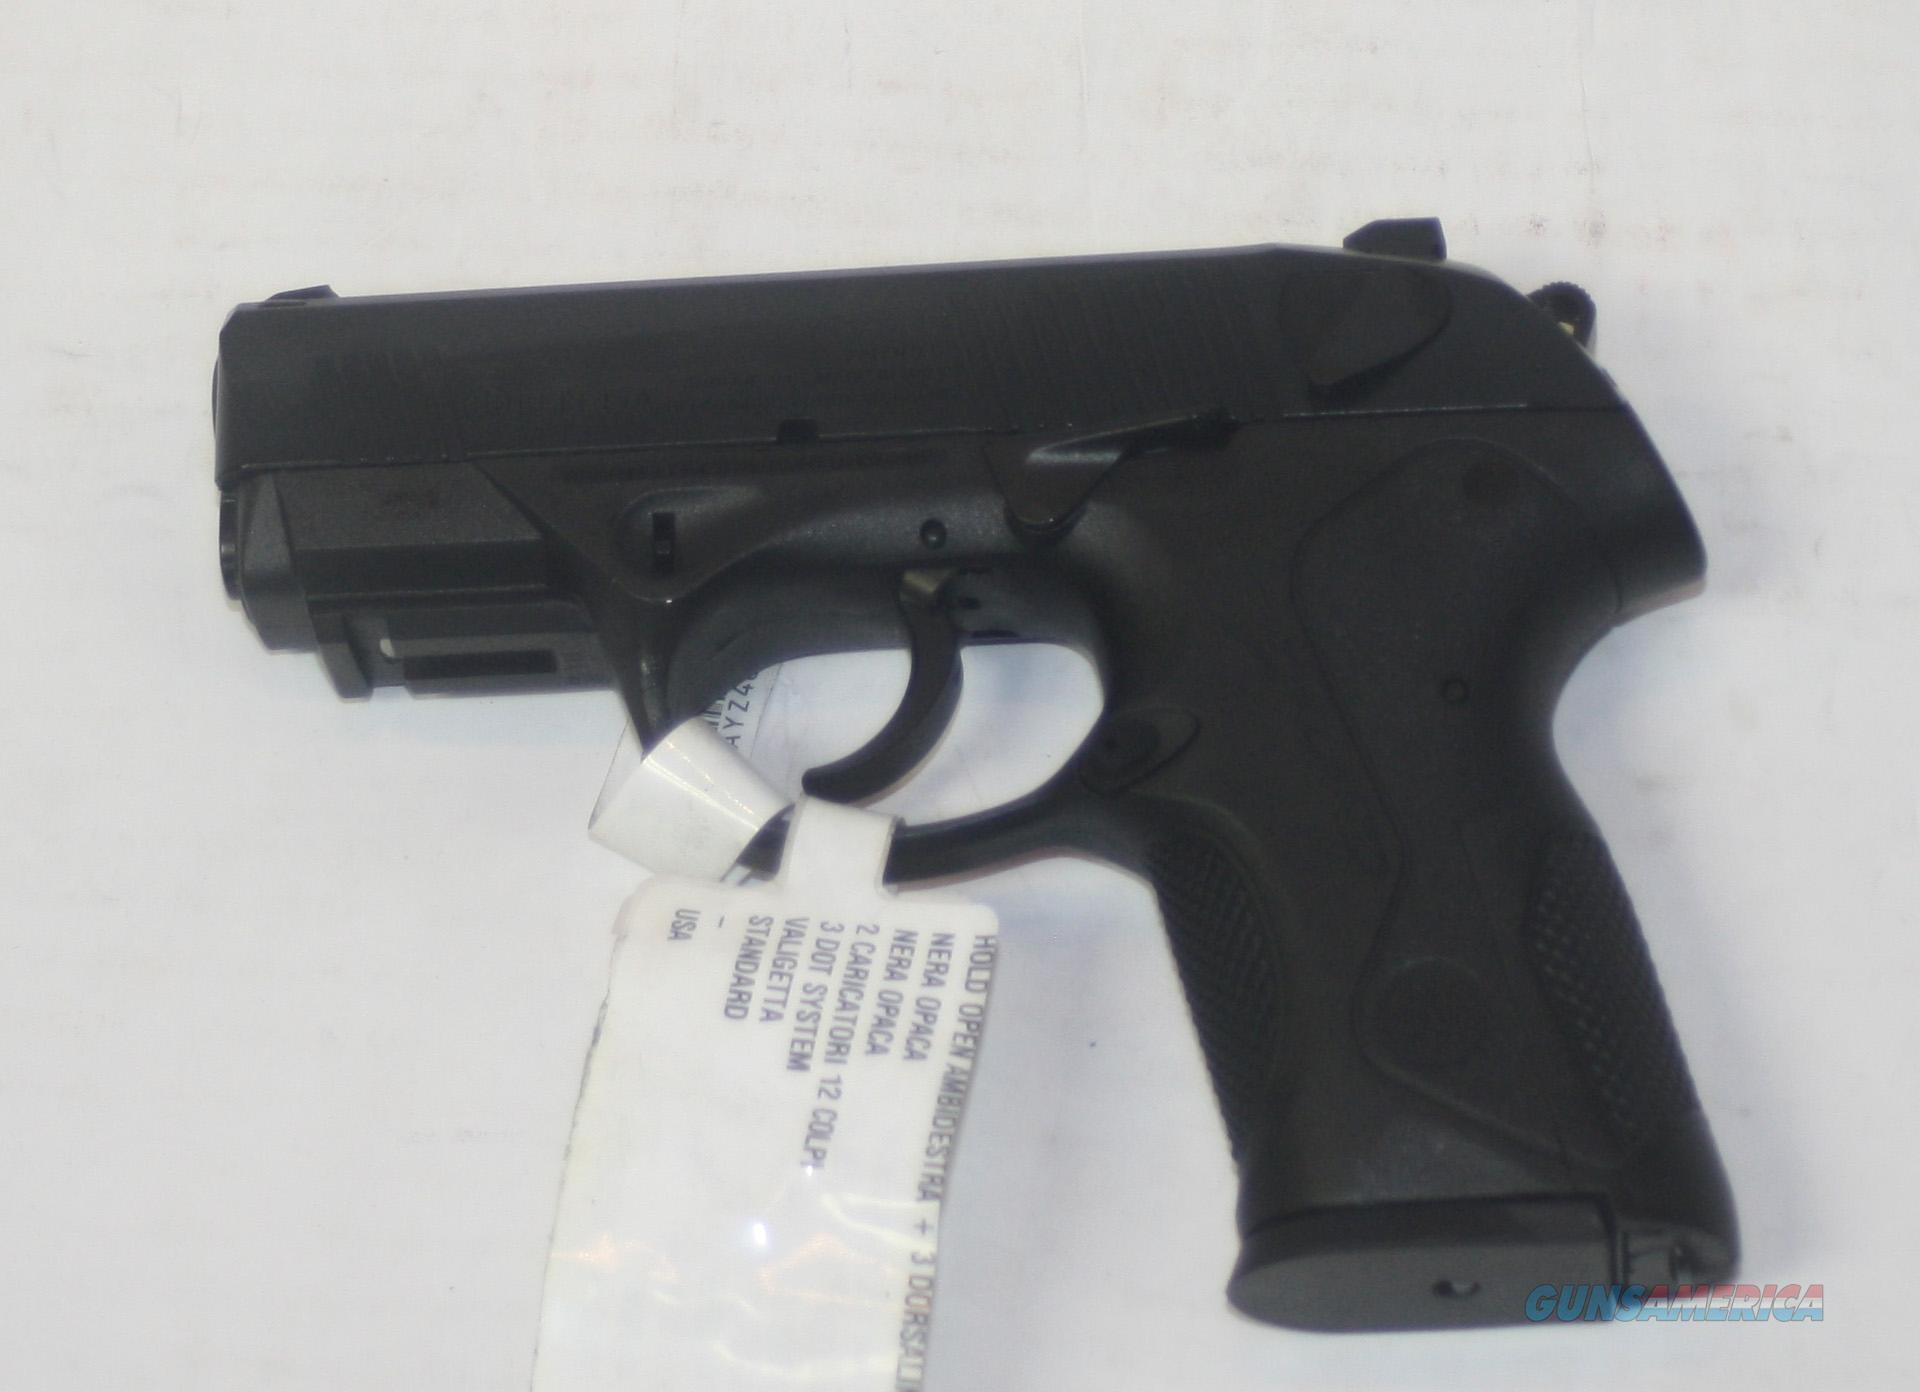 BERETTA PX4 STORM COMPACT 40 S&W NATO CERTIFIED NEW IN BOX  Guns > Pistols > Beretta Pistols > Polymer Frame